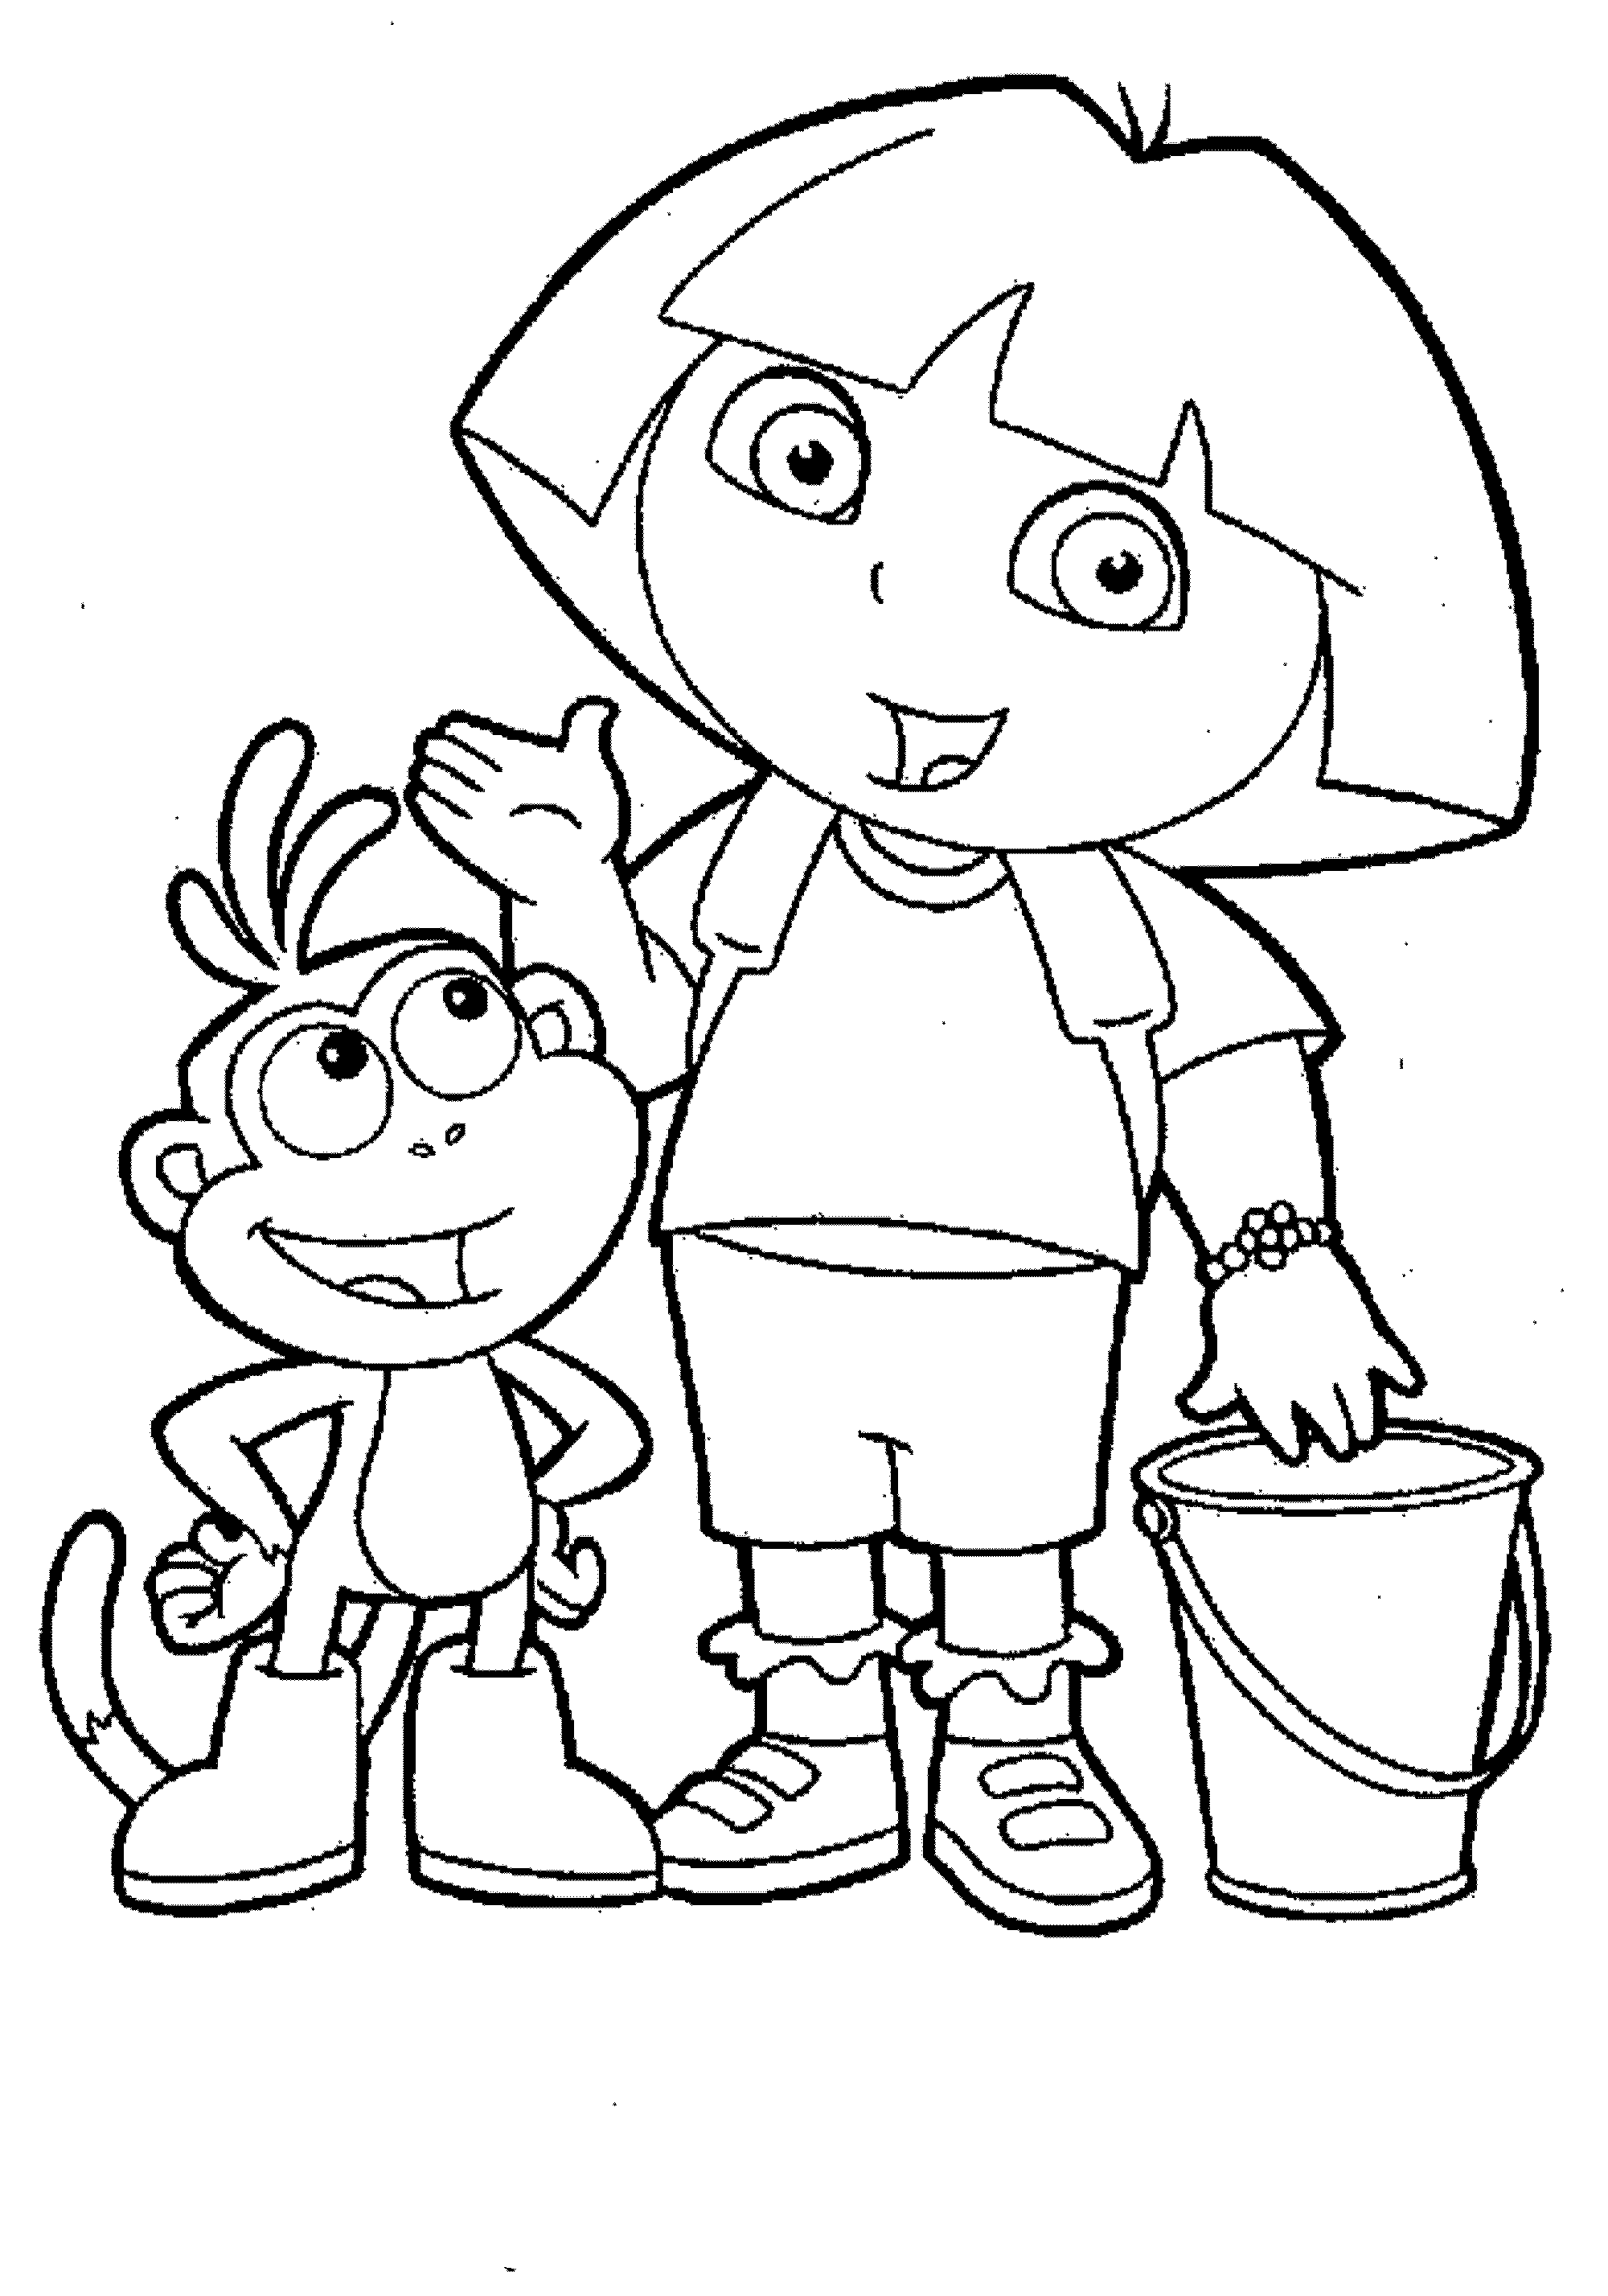 dora colouring pages printable dora colouring pictures 2 coloring pages to print dora colouring printable pages